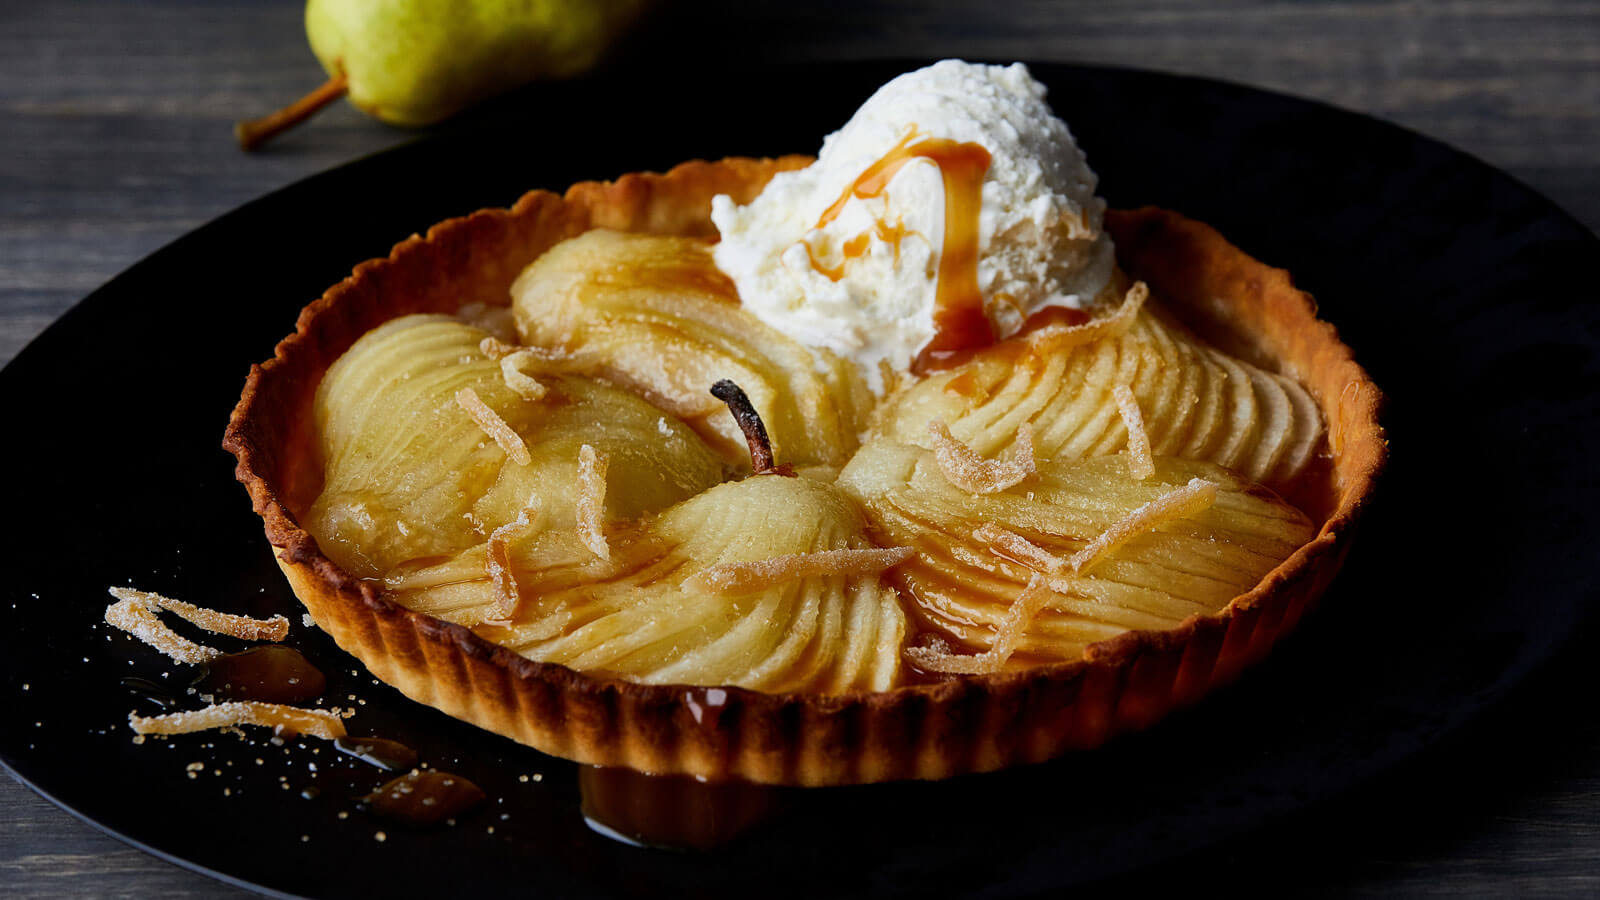 Comice Pear and Caramel Tart